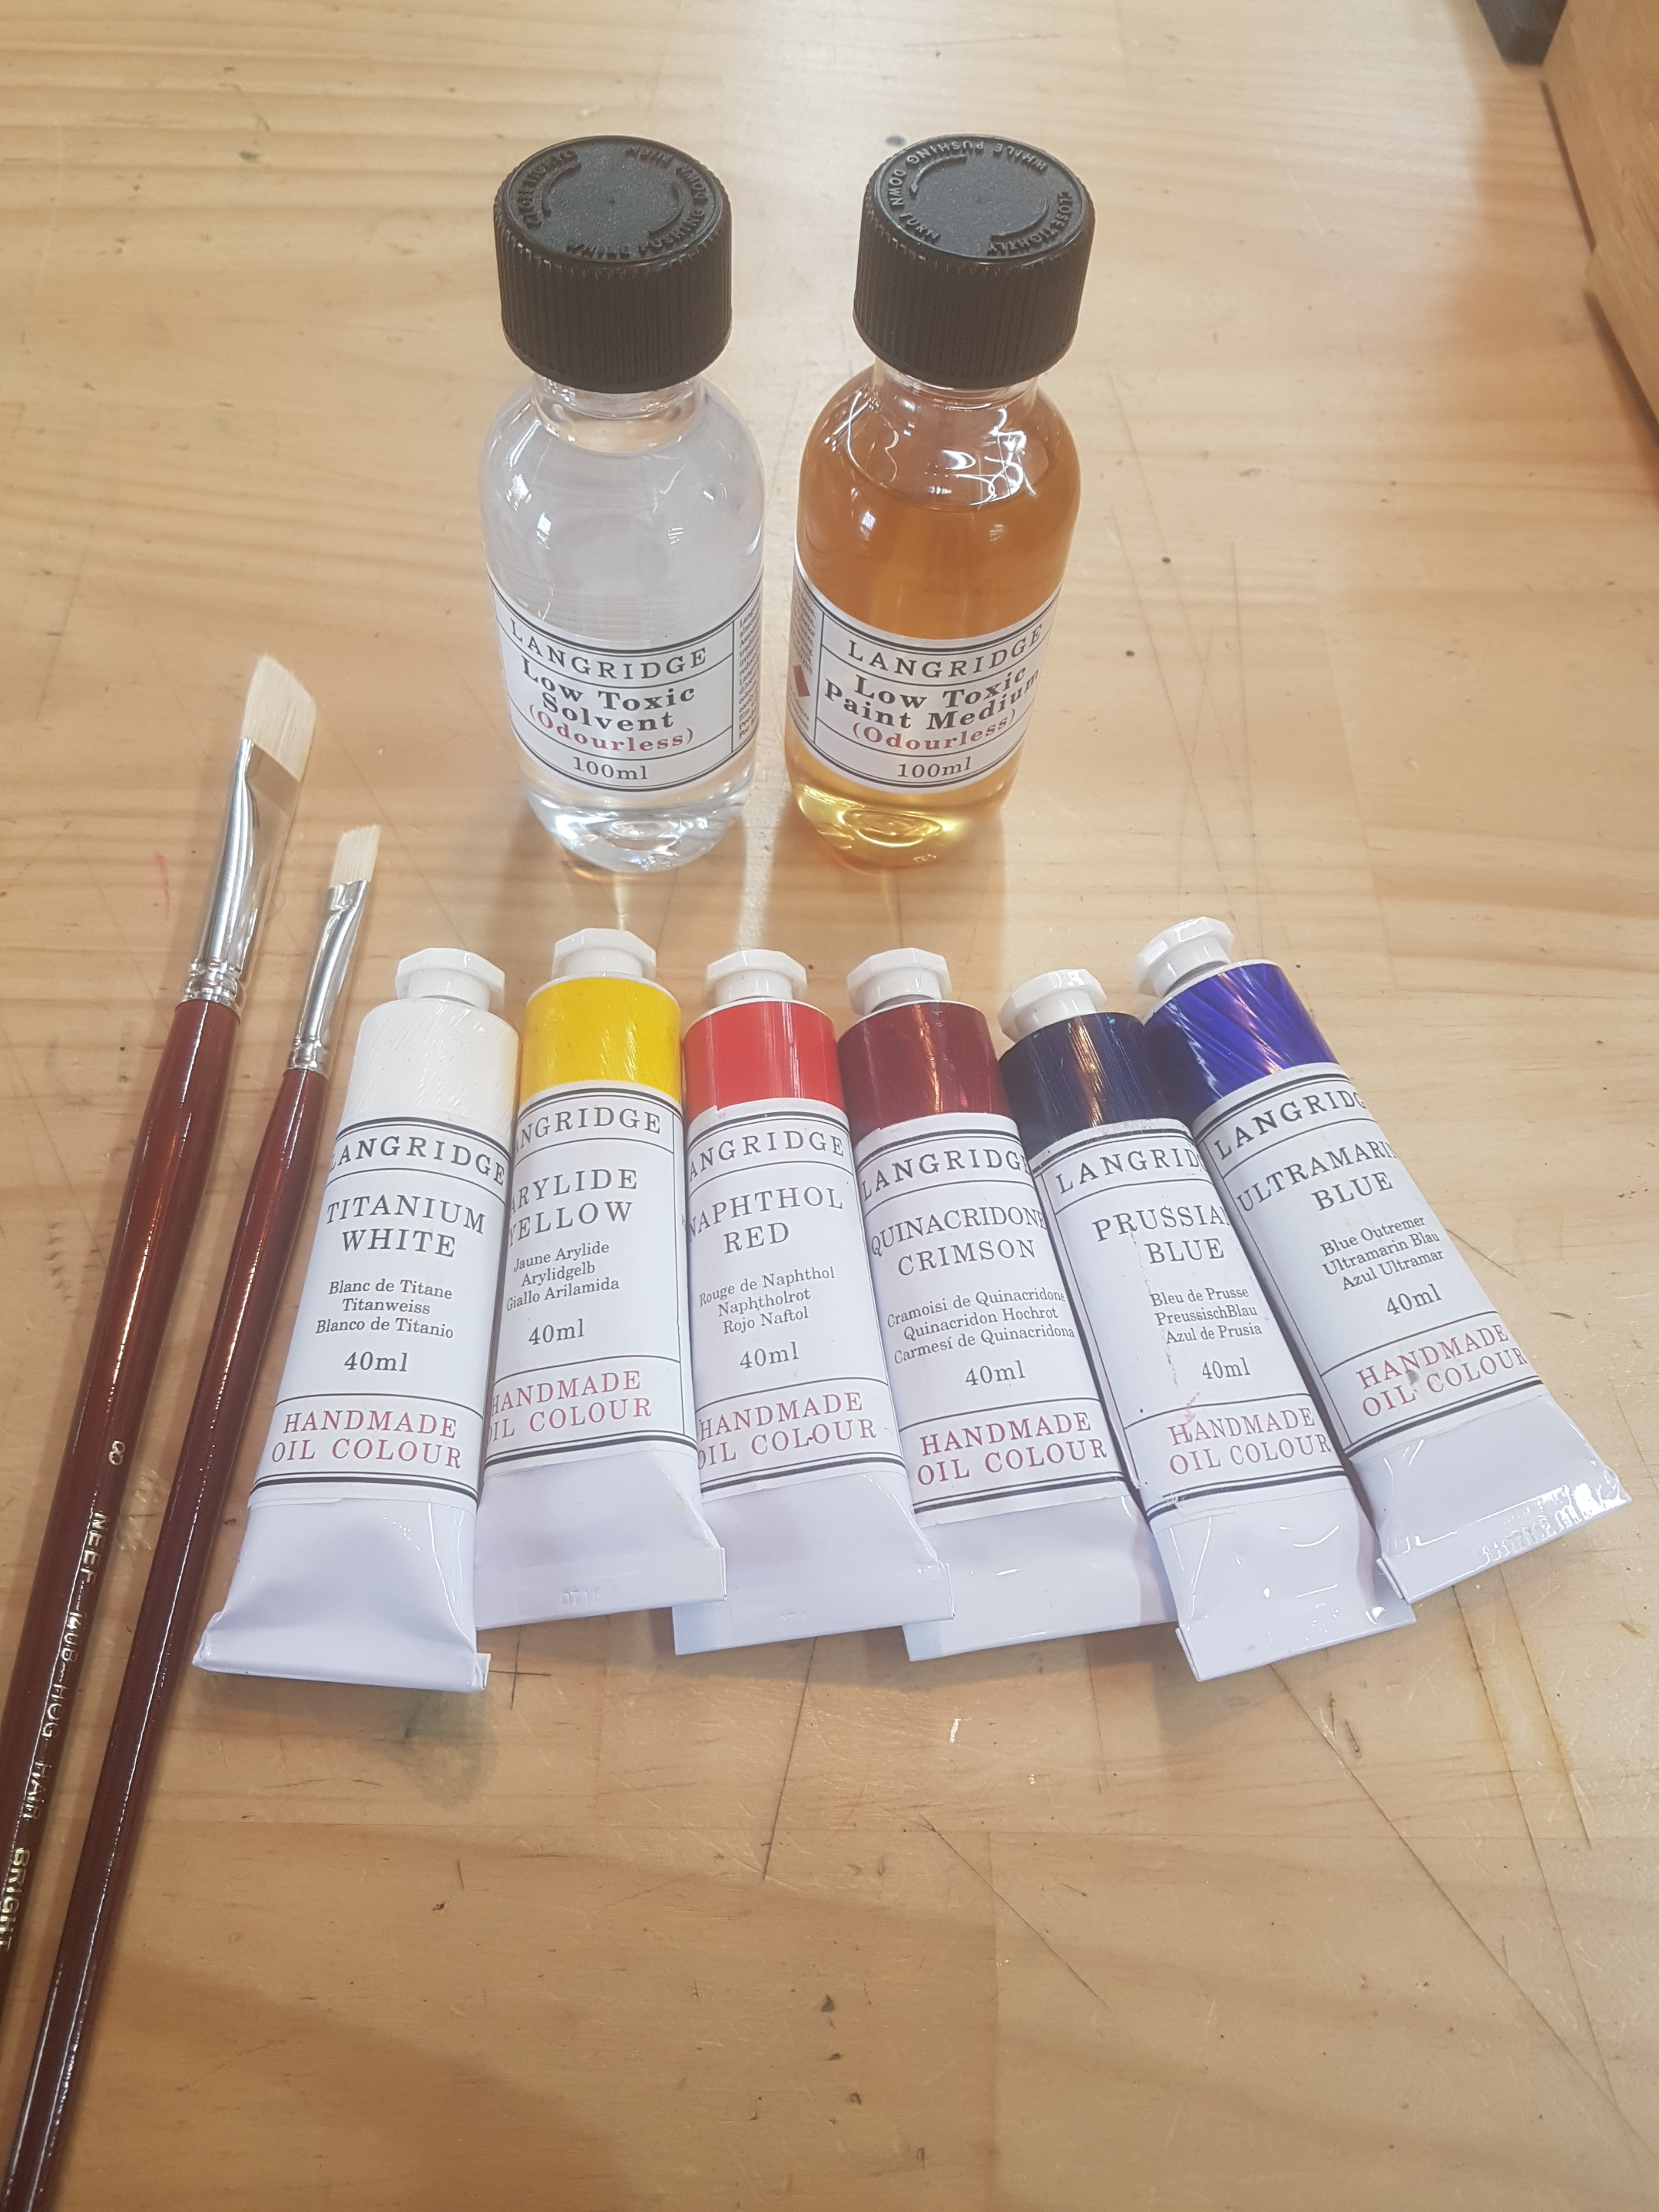 Beginners Professional (Langridge) Oil Kit: Seriously great value at $139.00